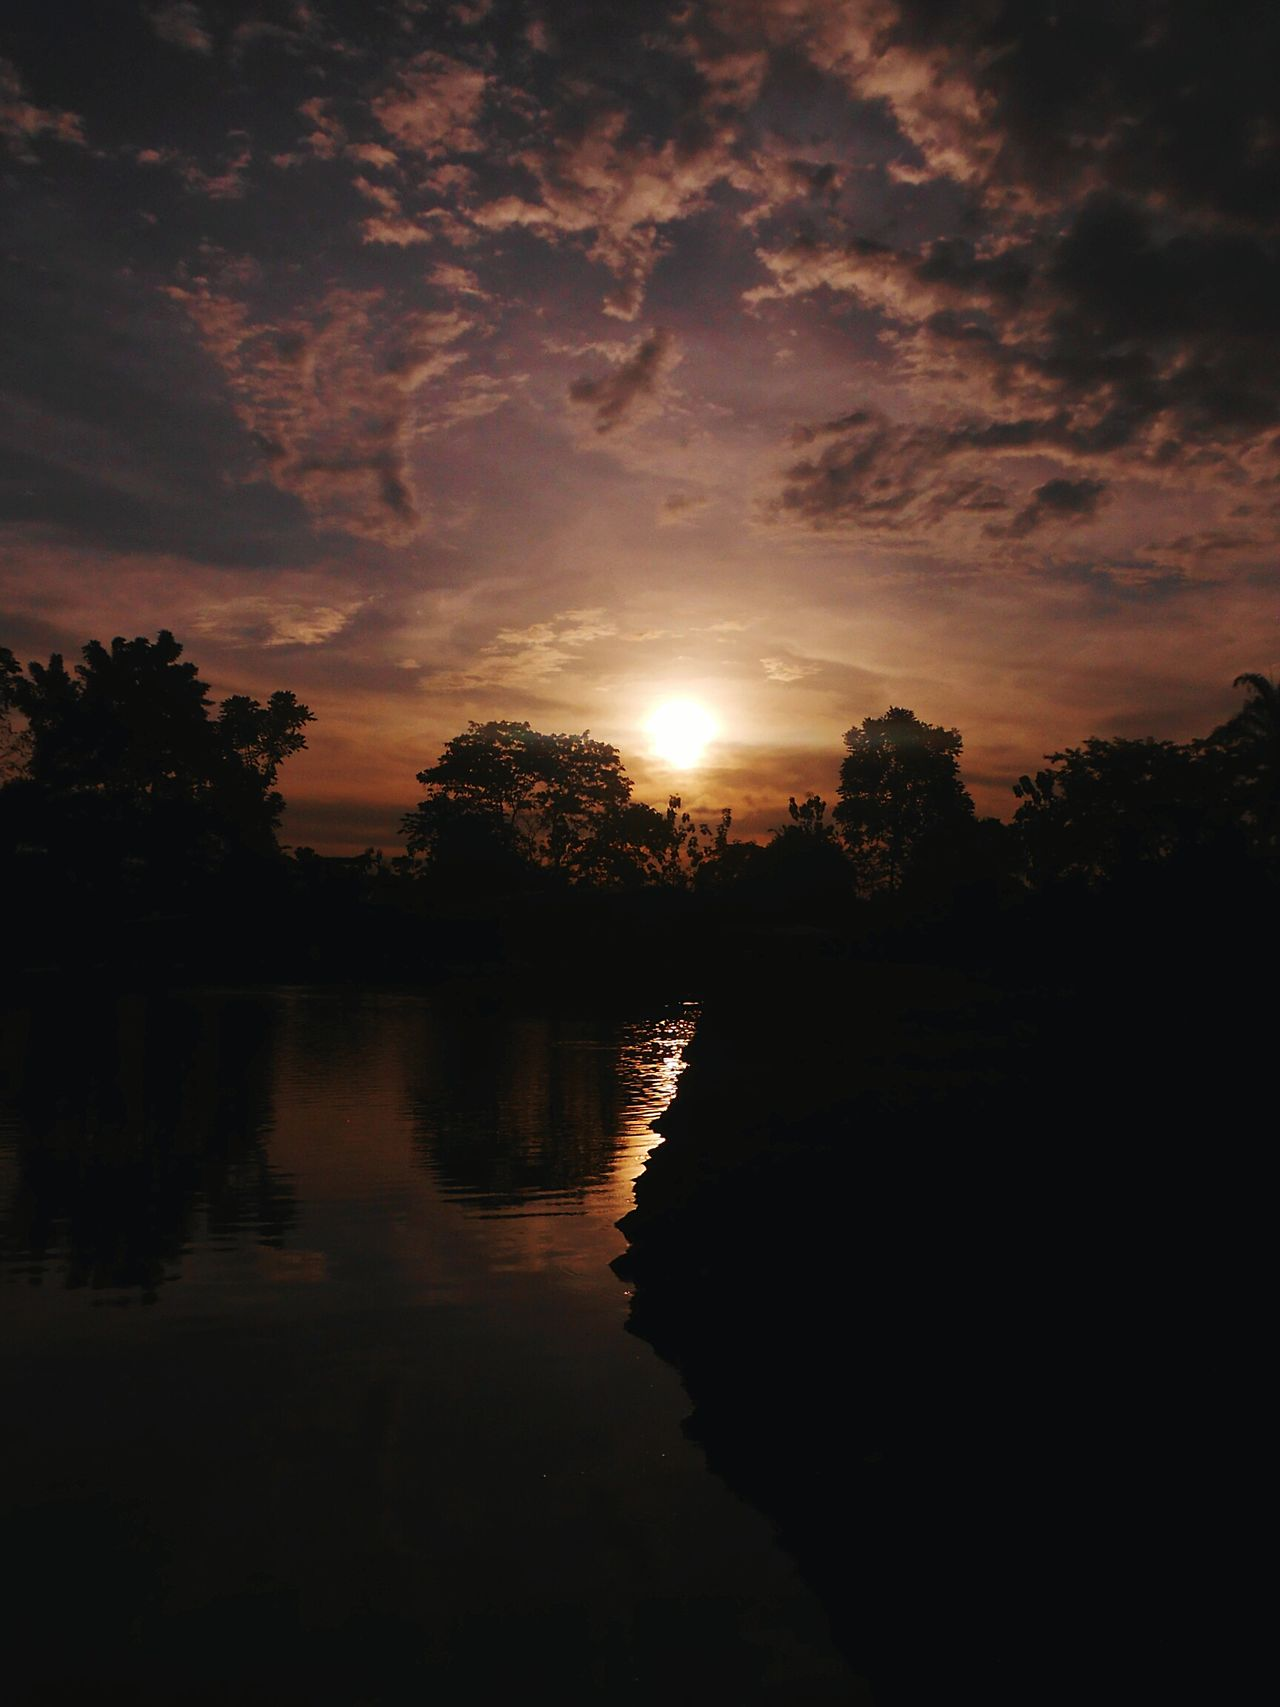 Silhouette Sunset Tree Tranquil Scene Water Scenics Cloud - Sky Beauty In Nature Outdoors Sky Sun Reflection Lake Growth Cloudy Tranquility Nature Cloud Calm Majestic The Moment - 2016 Eyeem Awards Capture The Moment The Eyeem Collection At Getty Images Beauty In Nature Afternoon Live For The Story